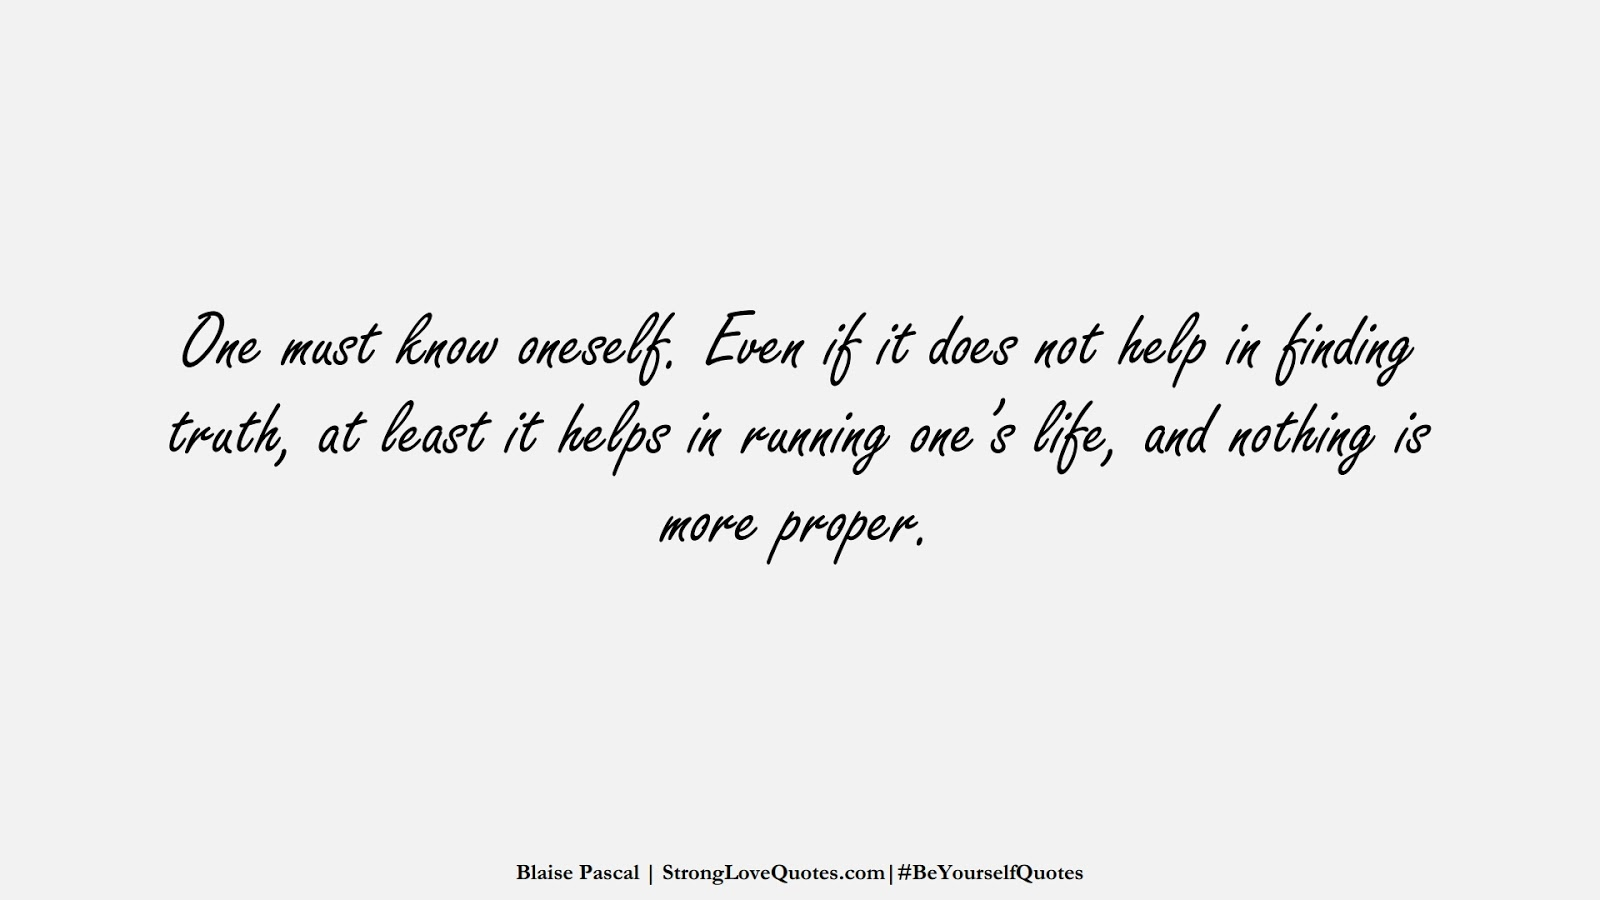 One must know oneself. Even if it does not help in finding truth, at least it helps in running one's life, and nothing is more proper. (Blaise Pascal);  #BeYourselfQuotes